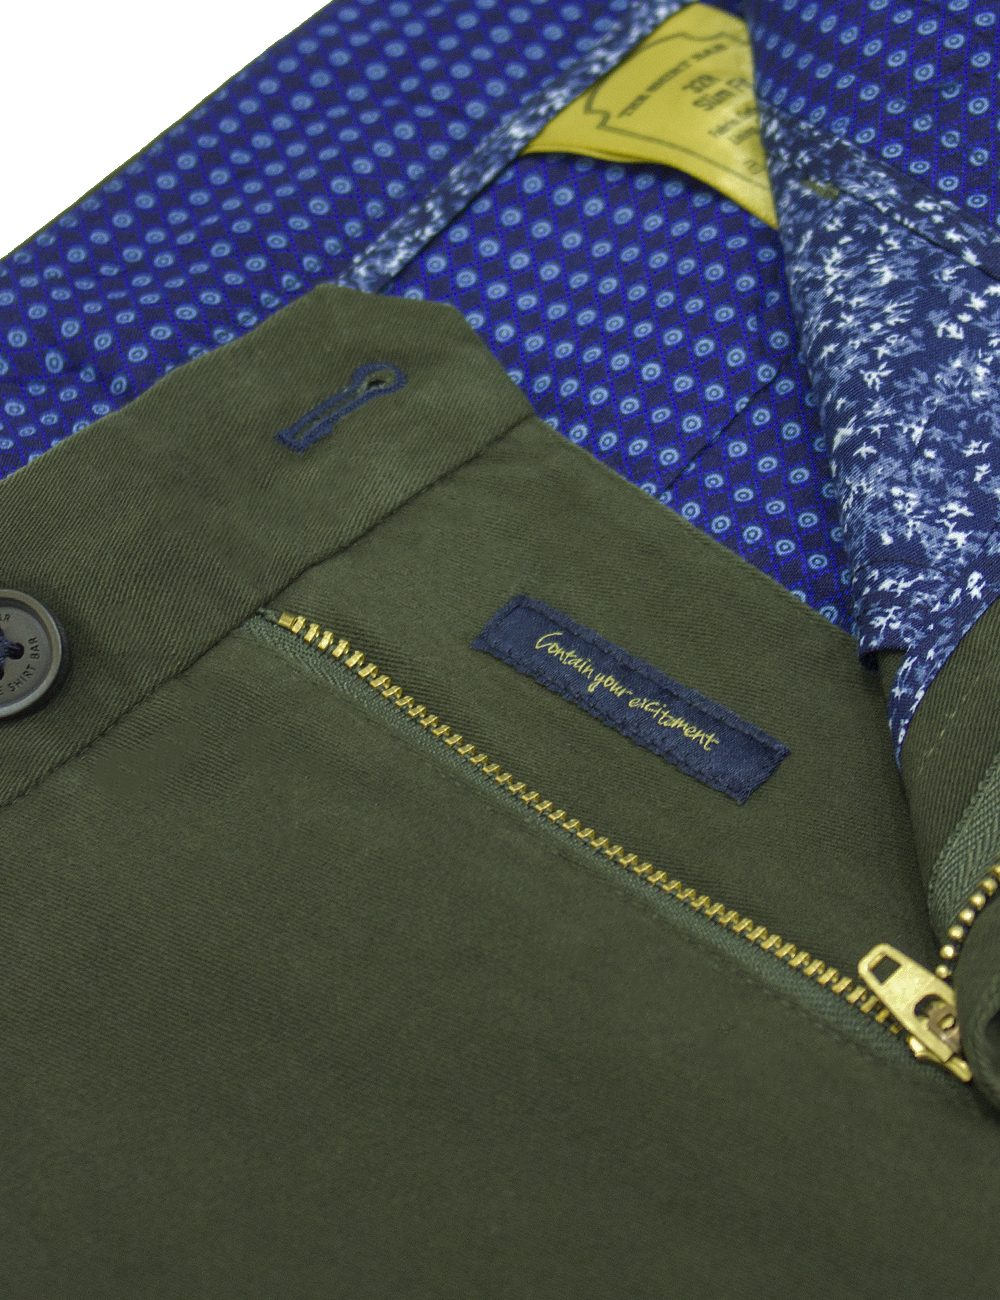 Slim Fit Olive Green Casual Pants - CPSFA2.2